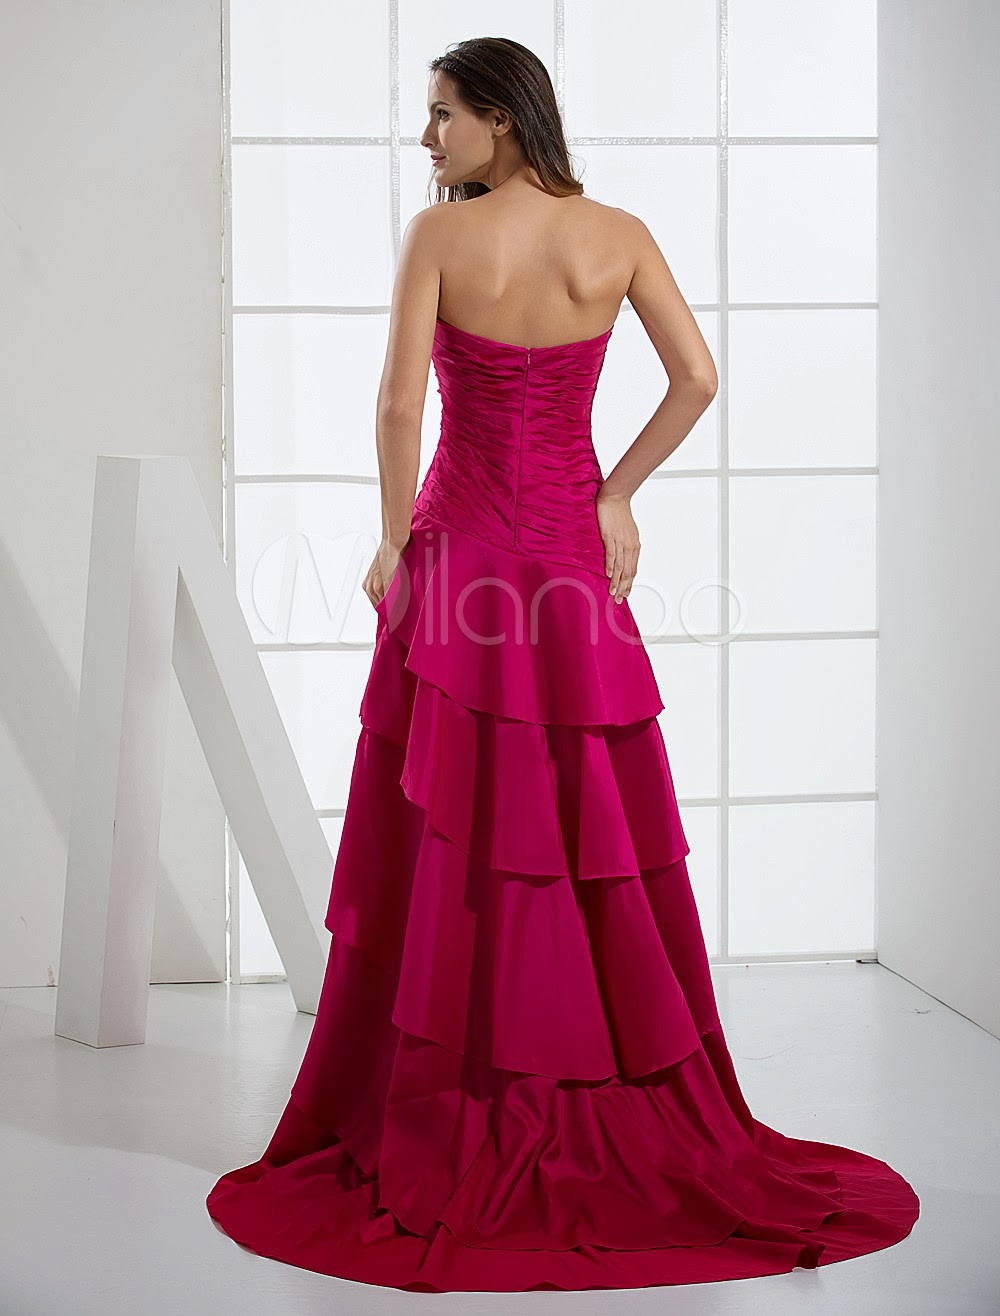 China Wholesale Dresses - Euro Style A-line Sweetheart Strapless Applique Beaded Taffeta Prom Gown